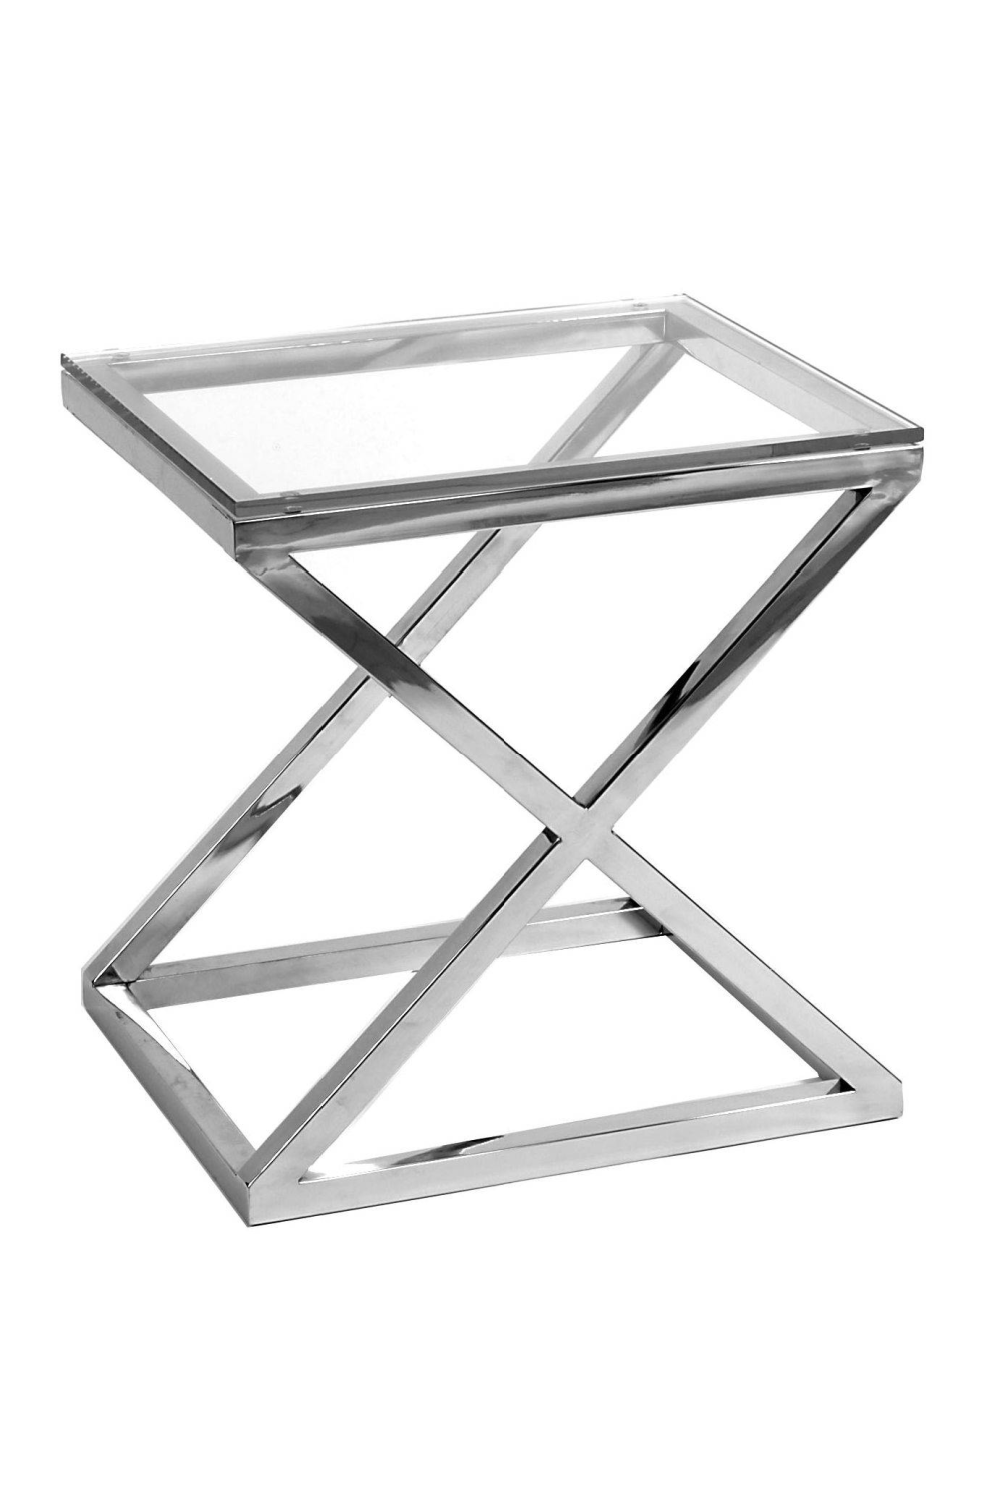 Glass Side Table | Eichholtz Criss Cross |#1 Eichholtz Online Retailer